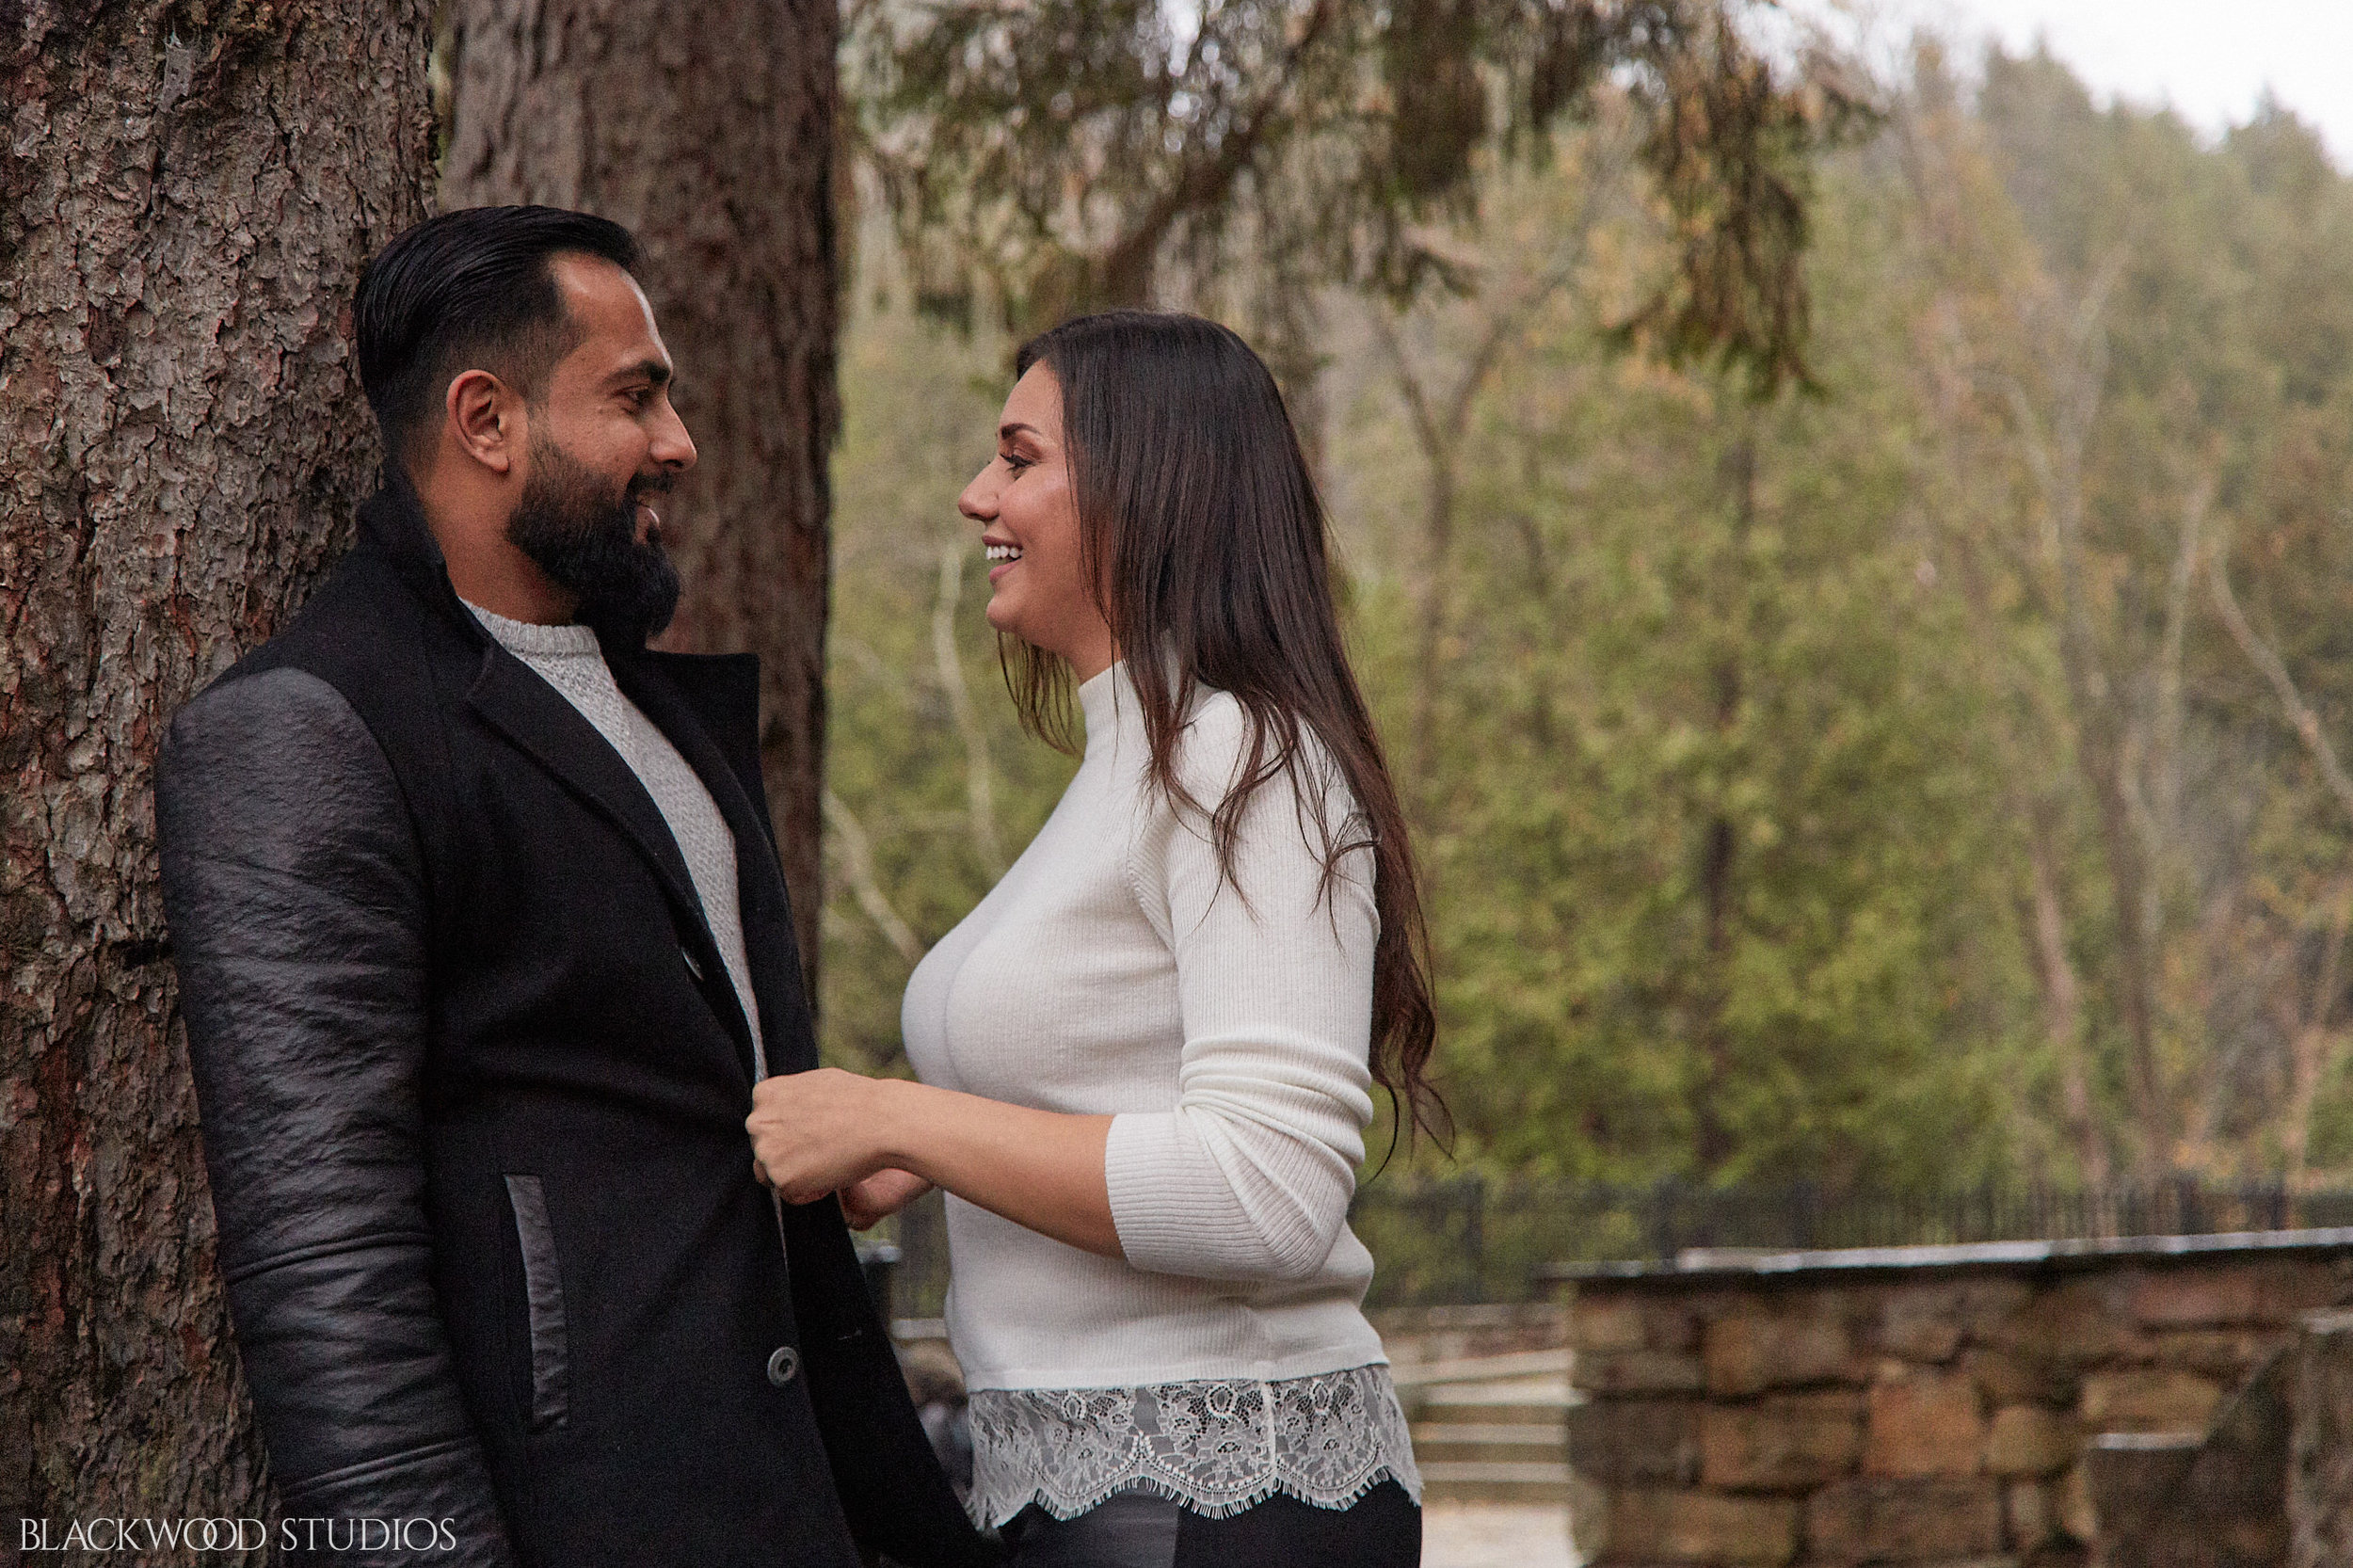 Blackwood-Studios-20181028174653-Farah-and-Zain-Engagement-photography-Belfountain-Conservation-Area-Caledon-Ontario.jpg